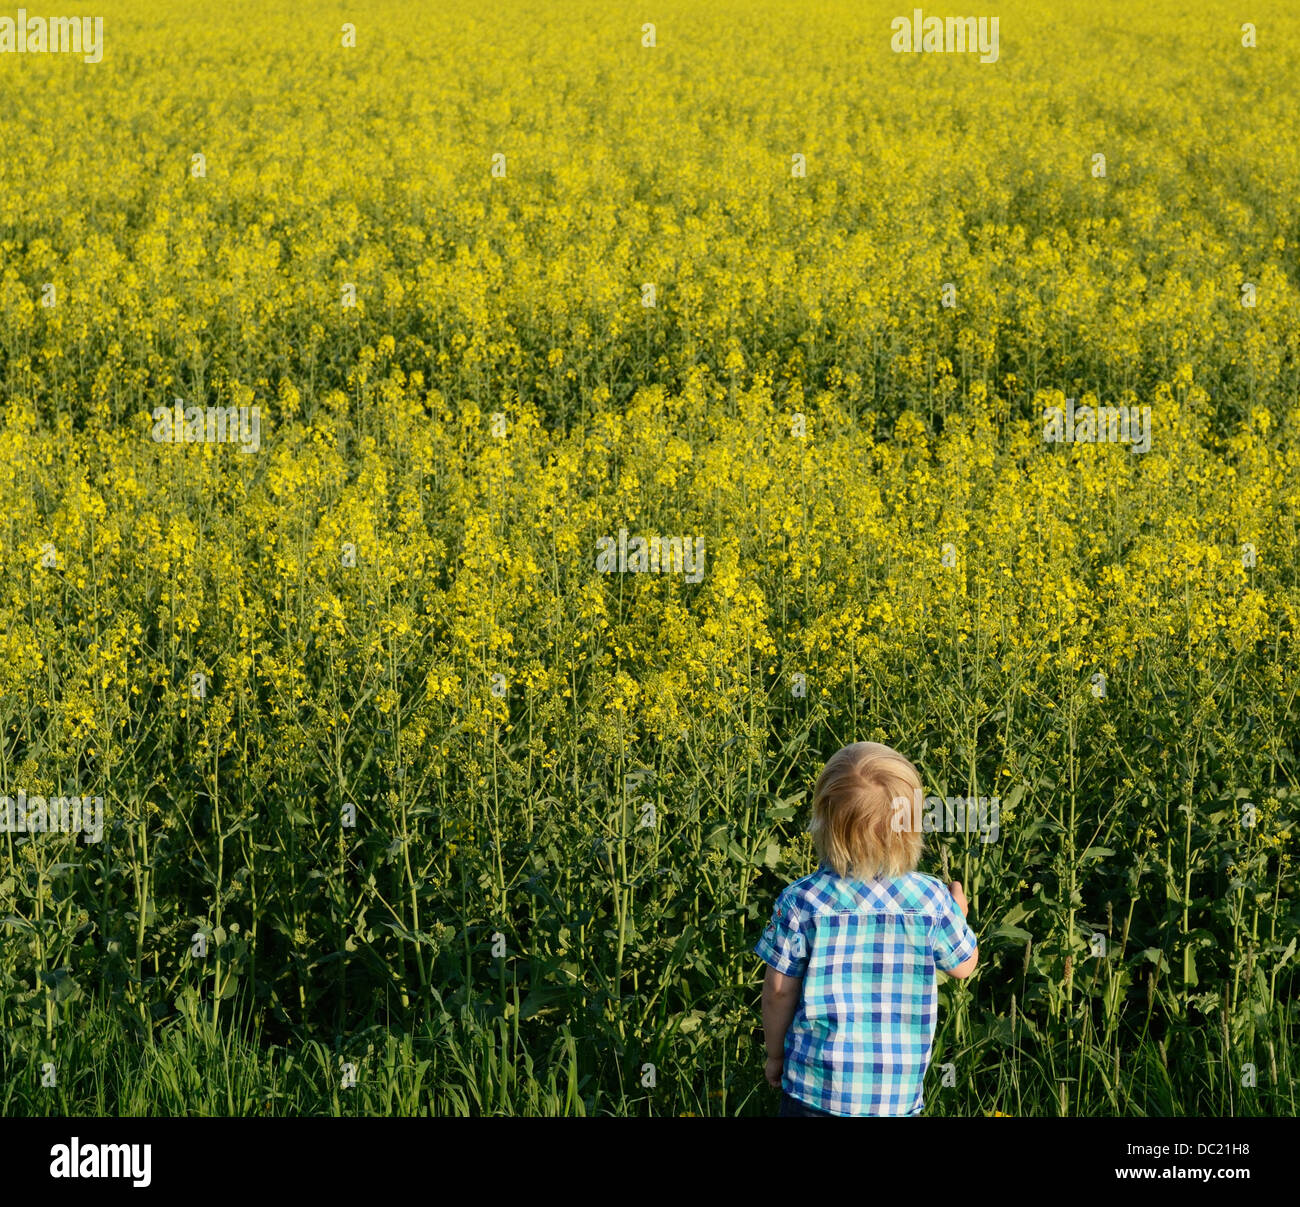 Boy looking at field, high angle view - Stock Image